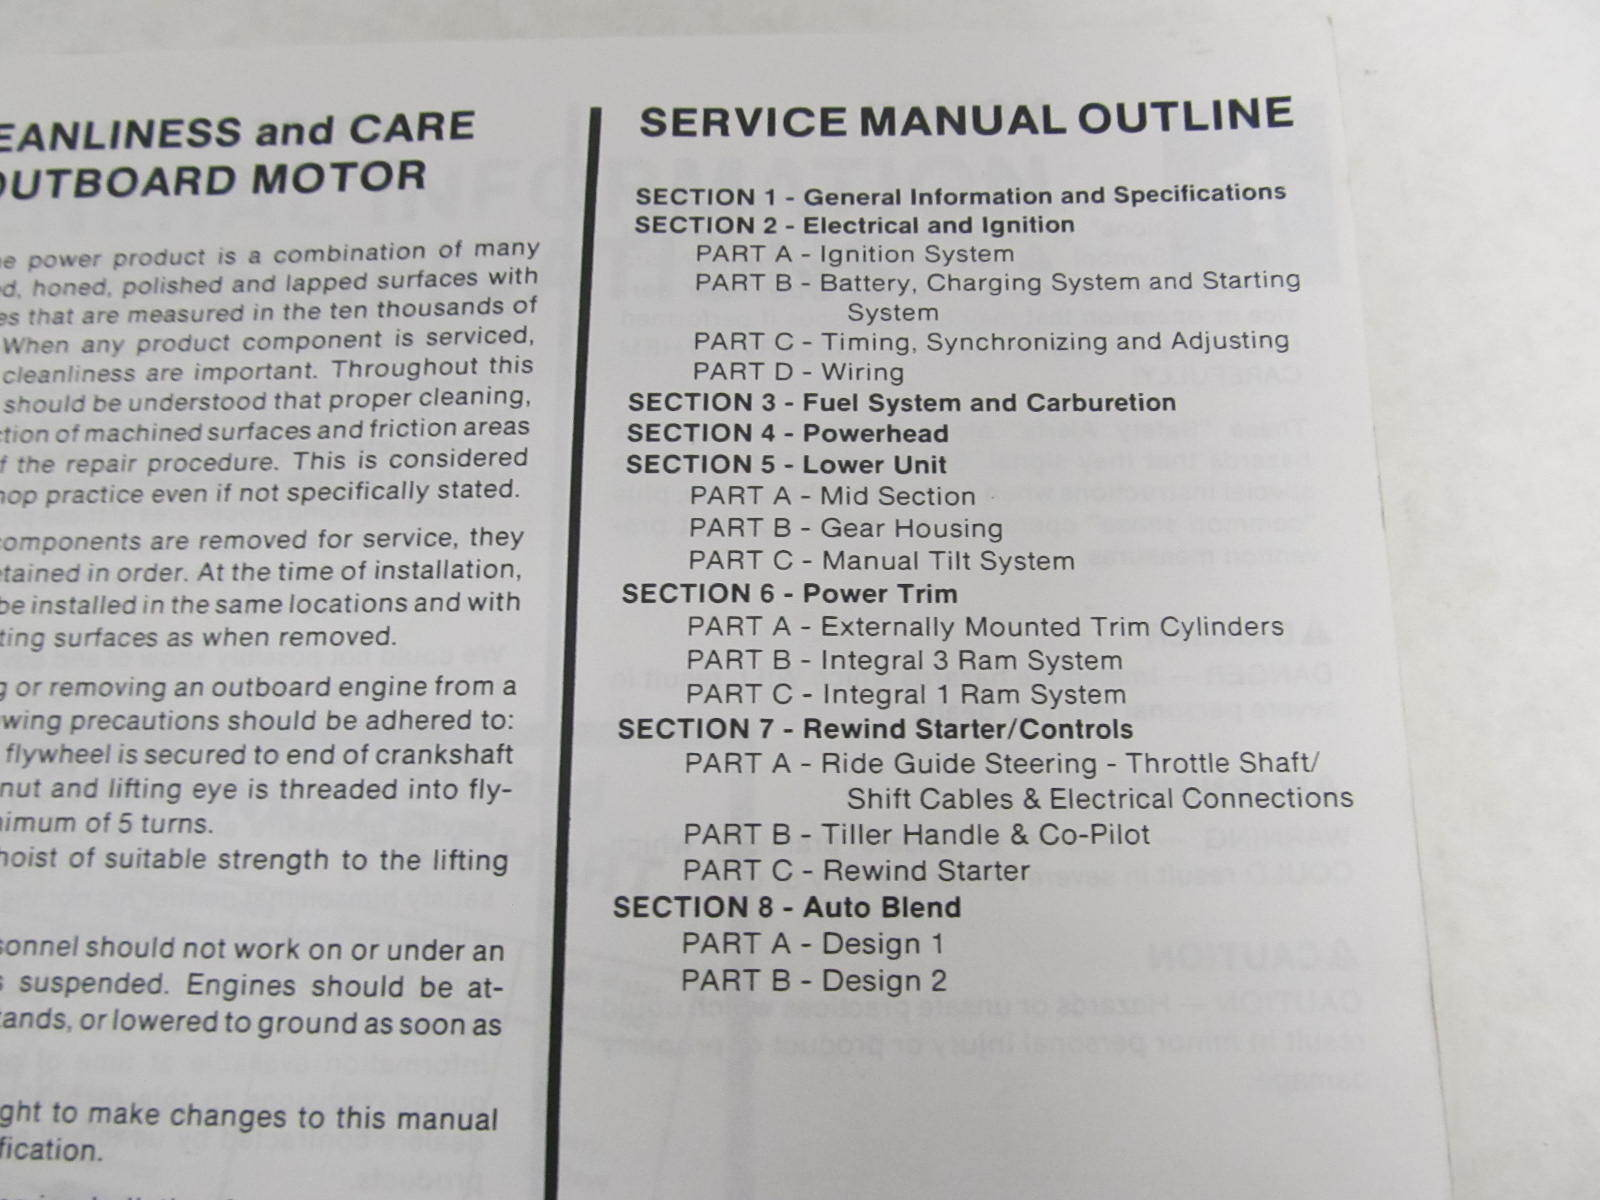 90 42794 1 690 mercury outboard service manual 35 40 hp 2 mercury service manual - 35-125 hp mercury 35 hp outboard service manual